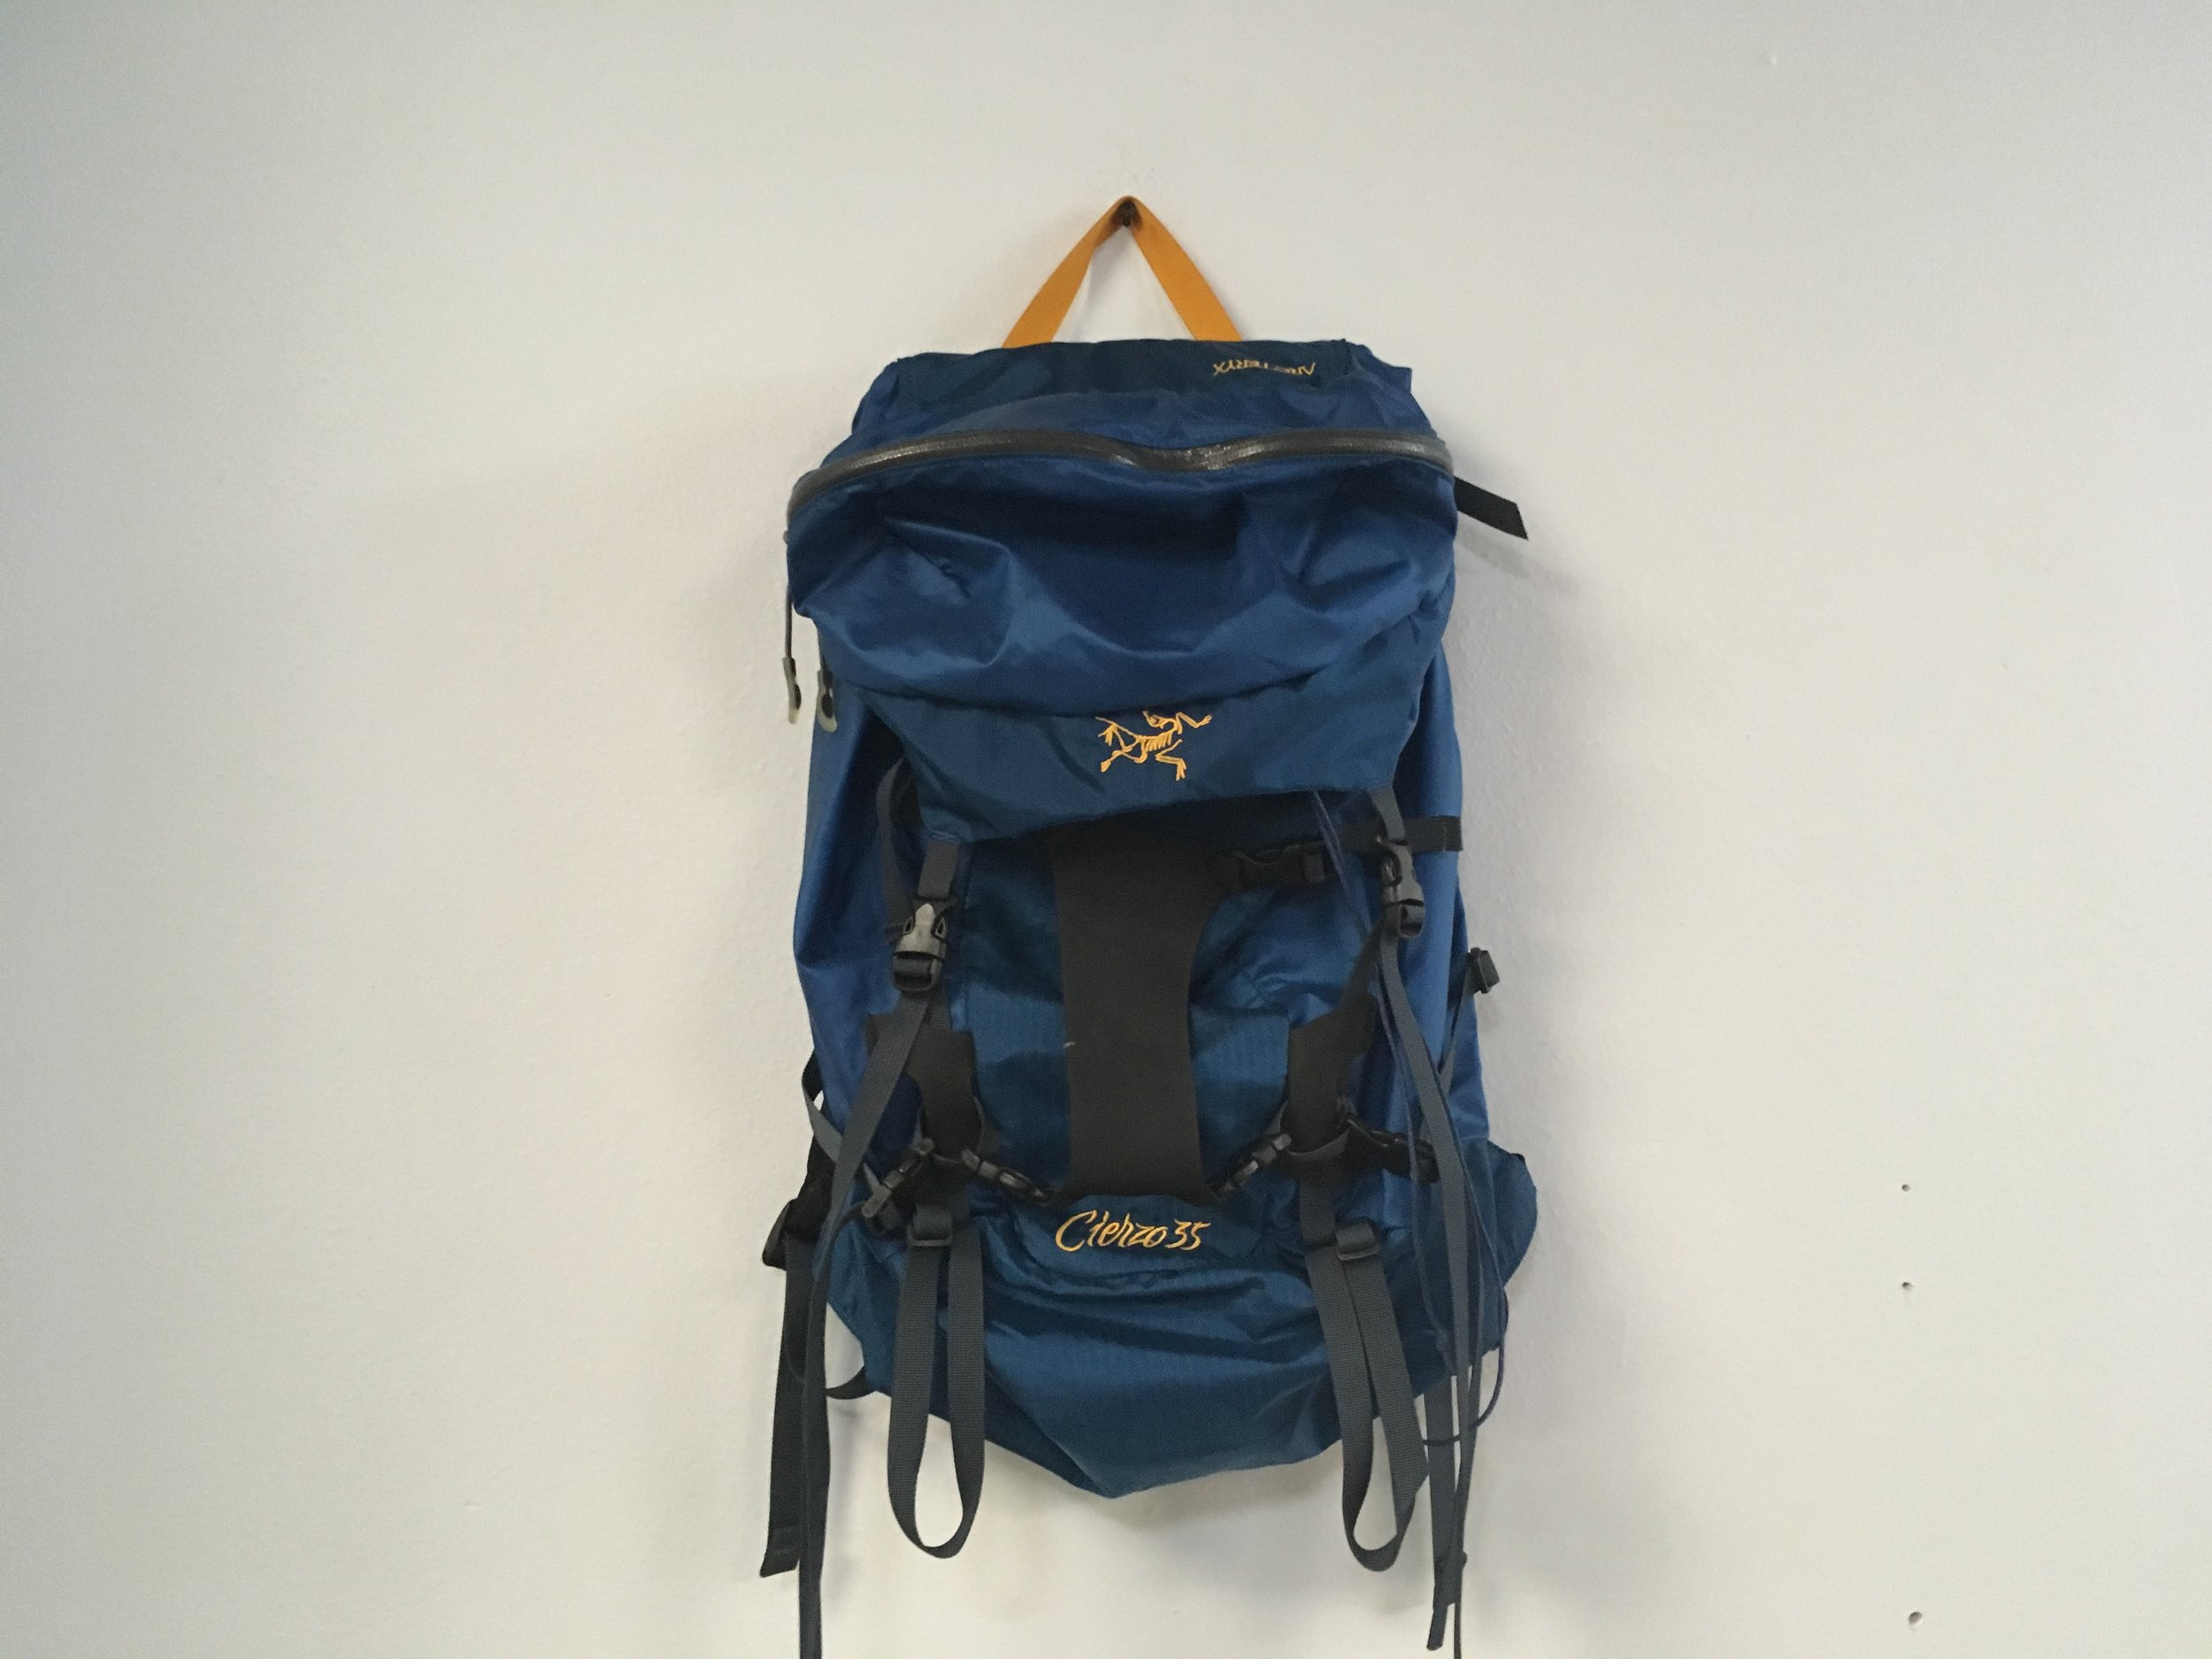 If you're looking for a super simple, lightweight climbing pack the Arcteryx Cierzo 35 is for you. Weighing in at 20oz and a max capacity of 40L the Cierzo is perfect for an overnight climbing mission any season. Retail for the bag is listed around $160 but we got you covered for the $79!